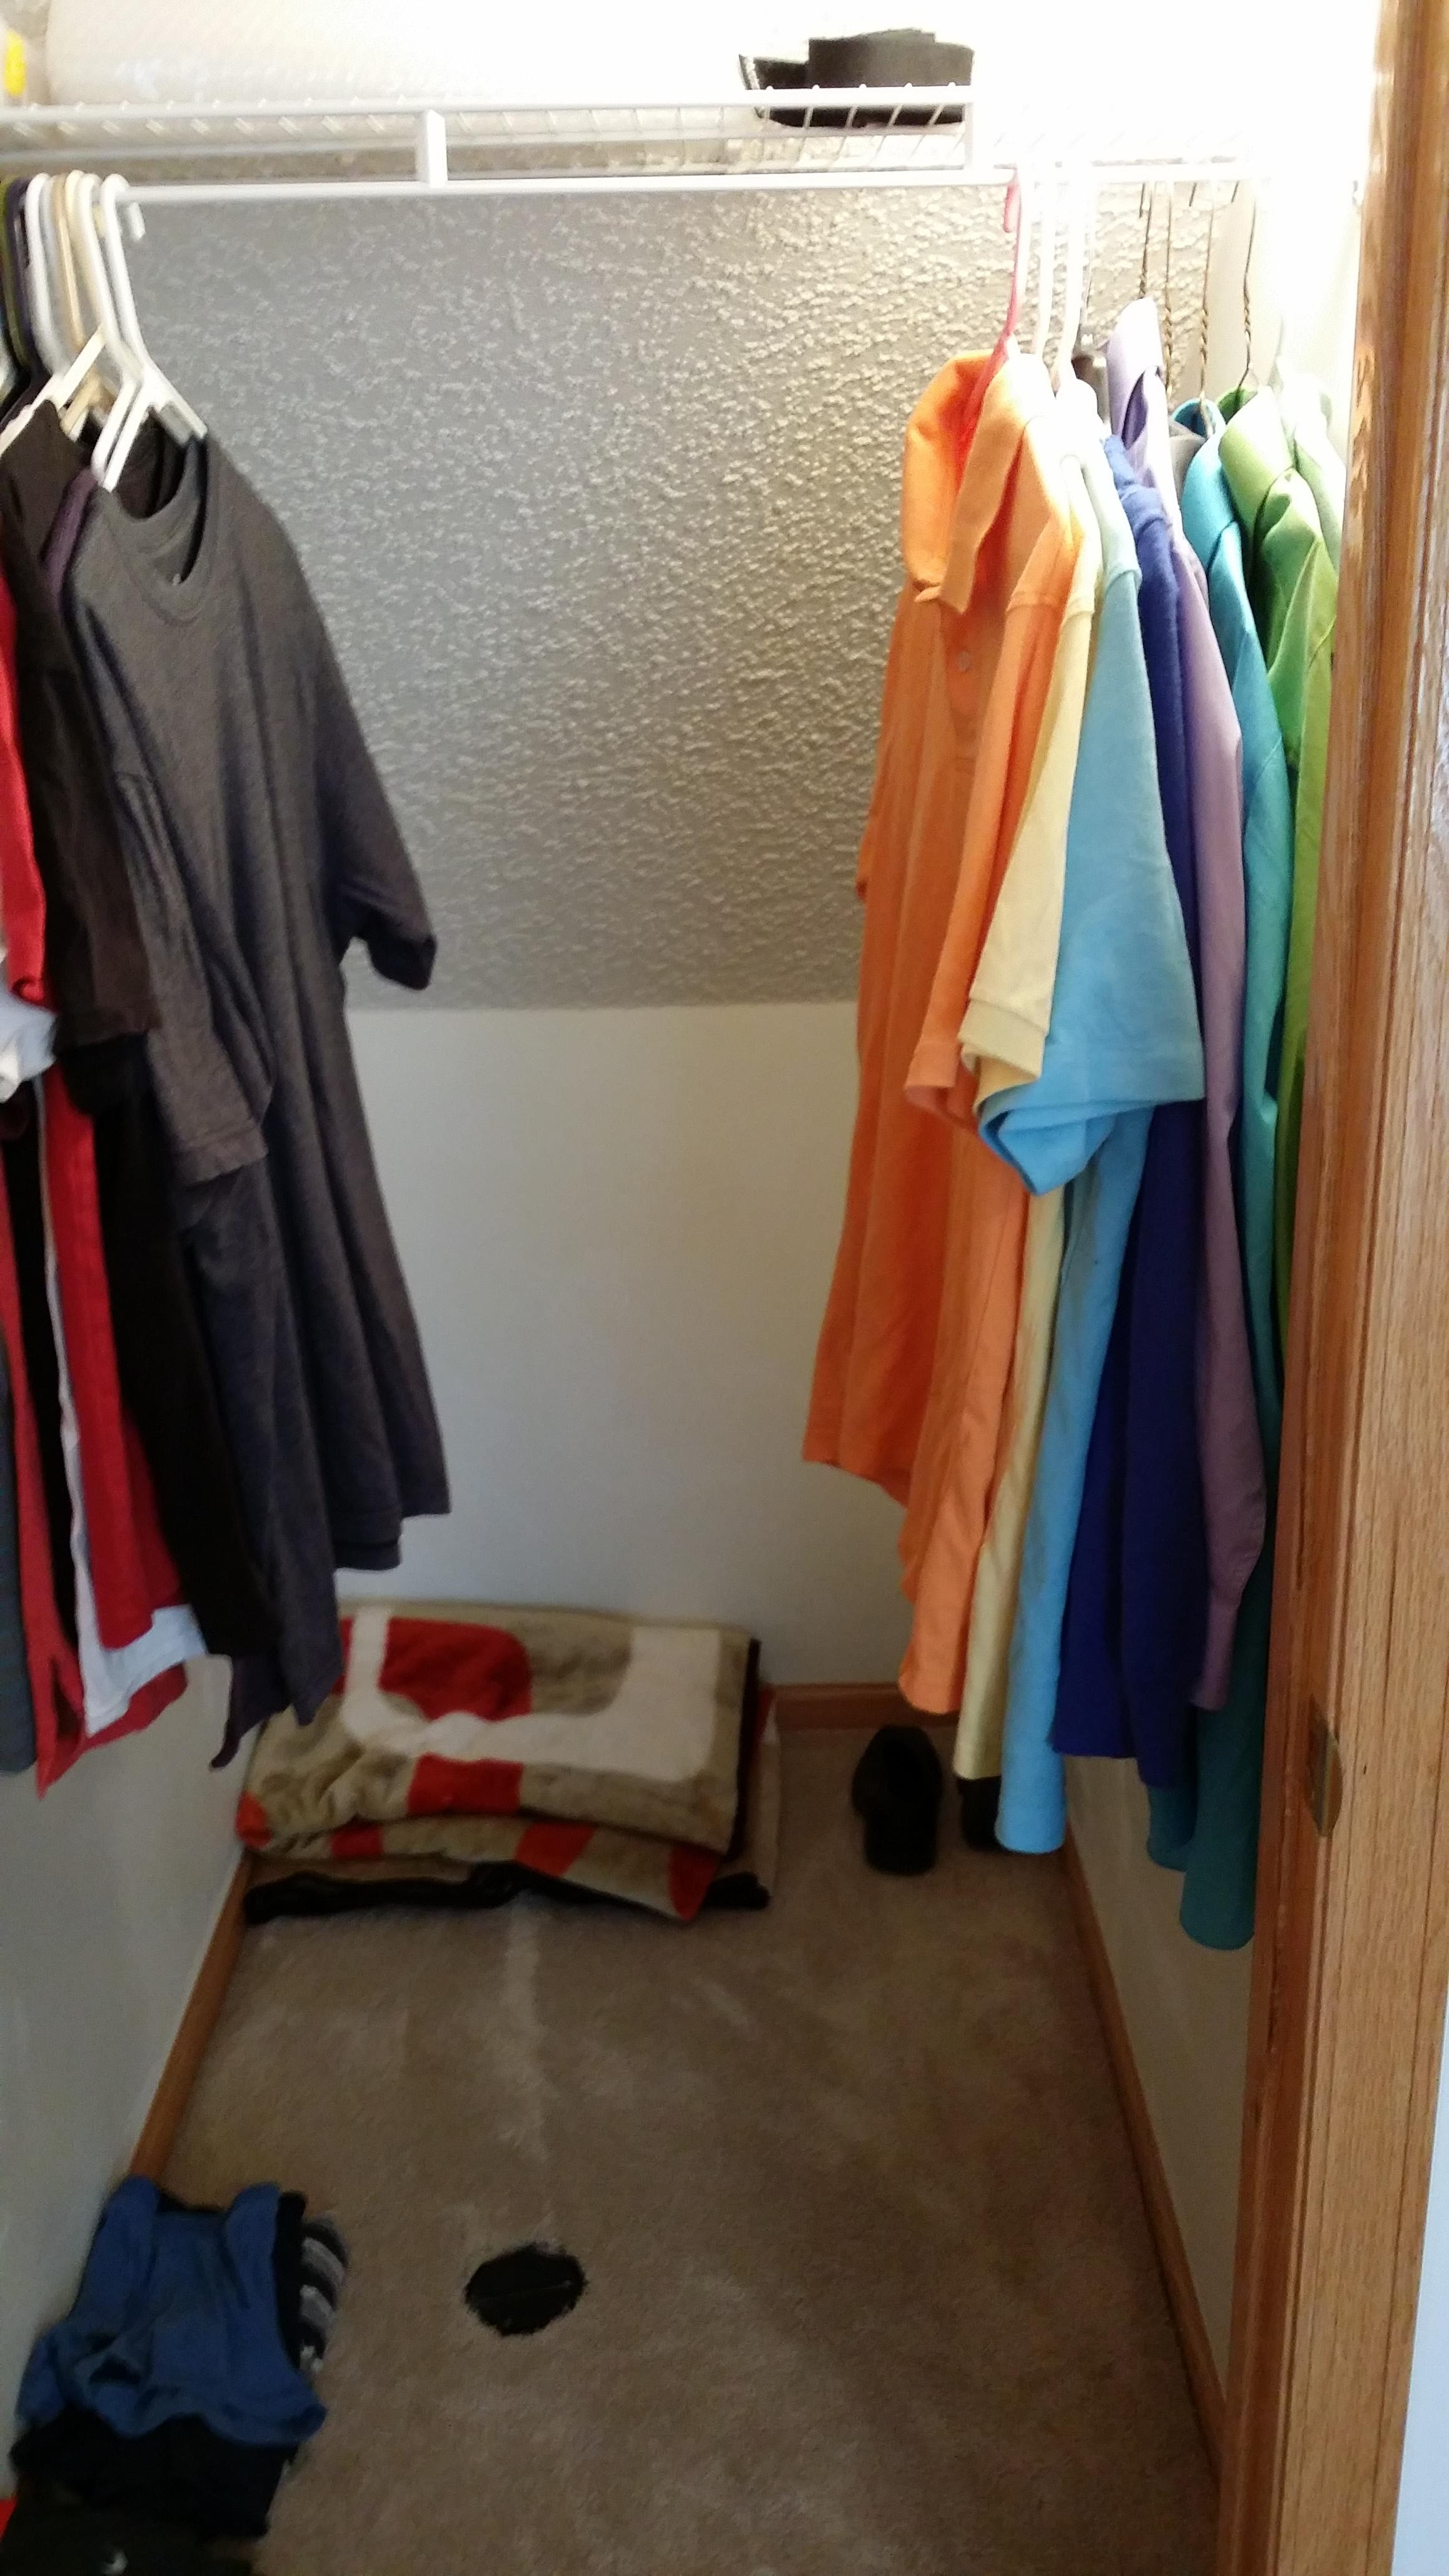 Was thinking of possibly putting a dresser in my closet. Any ideas